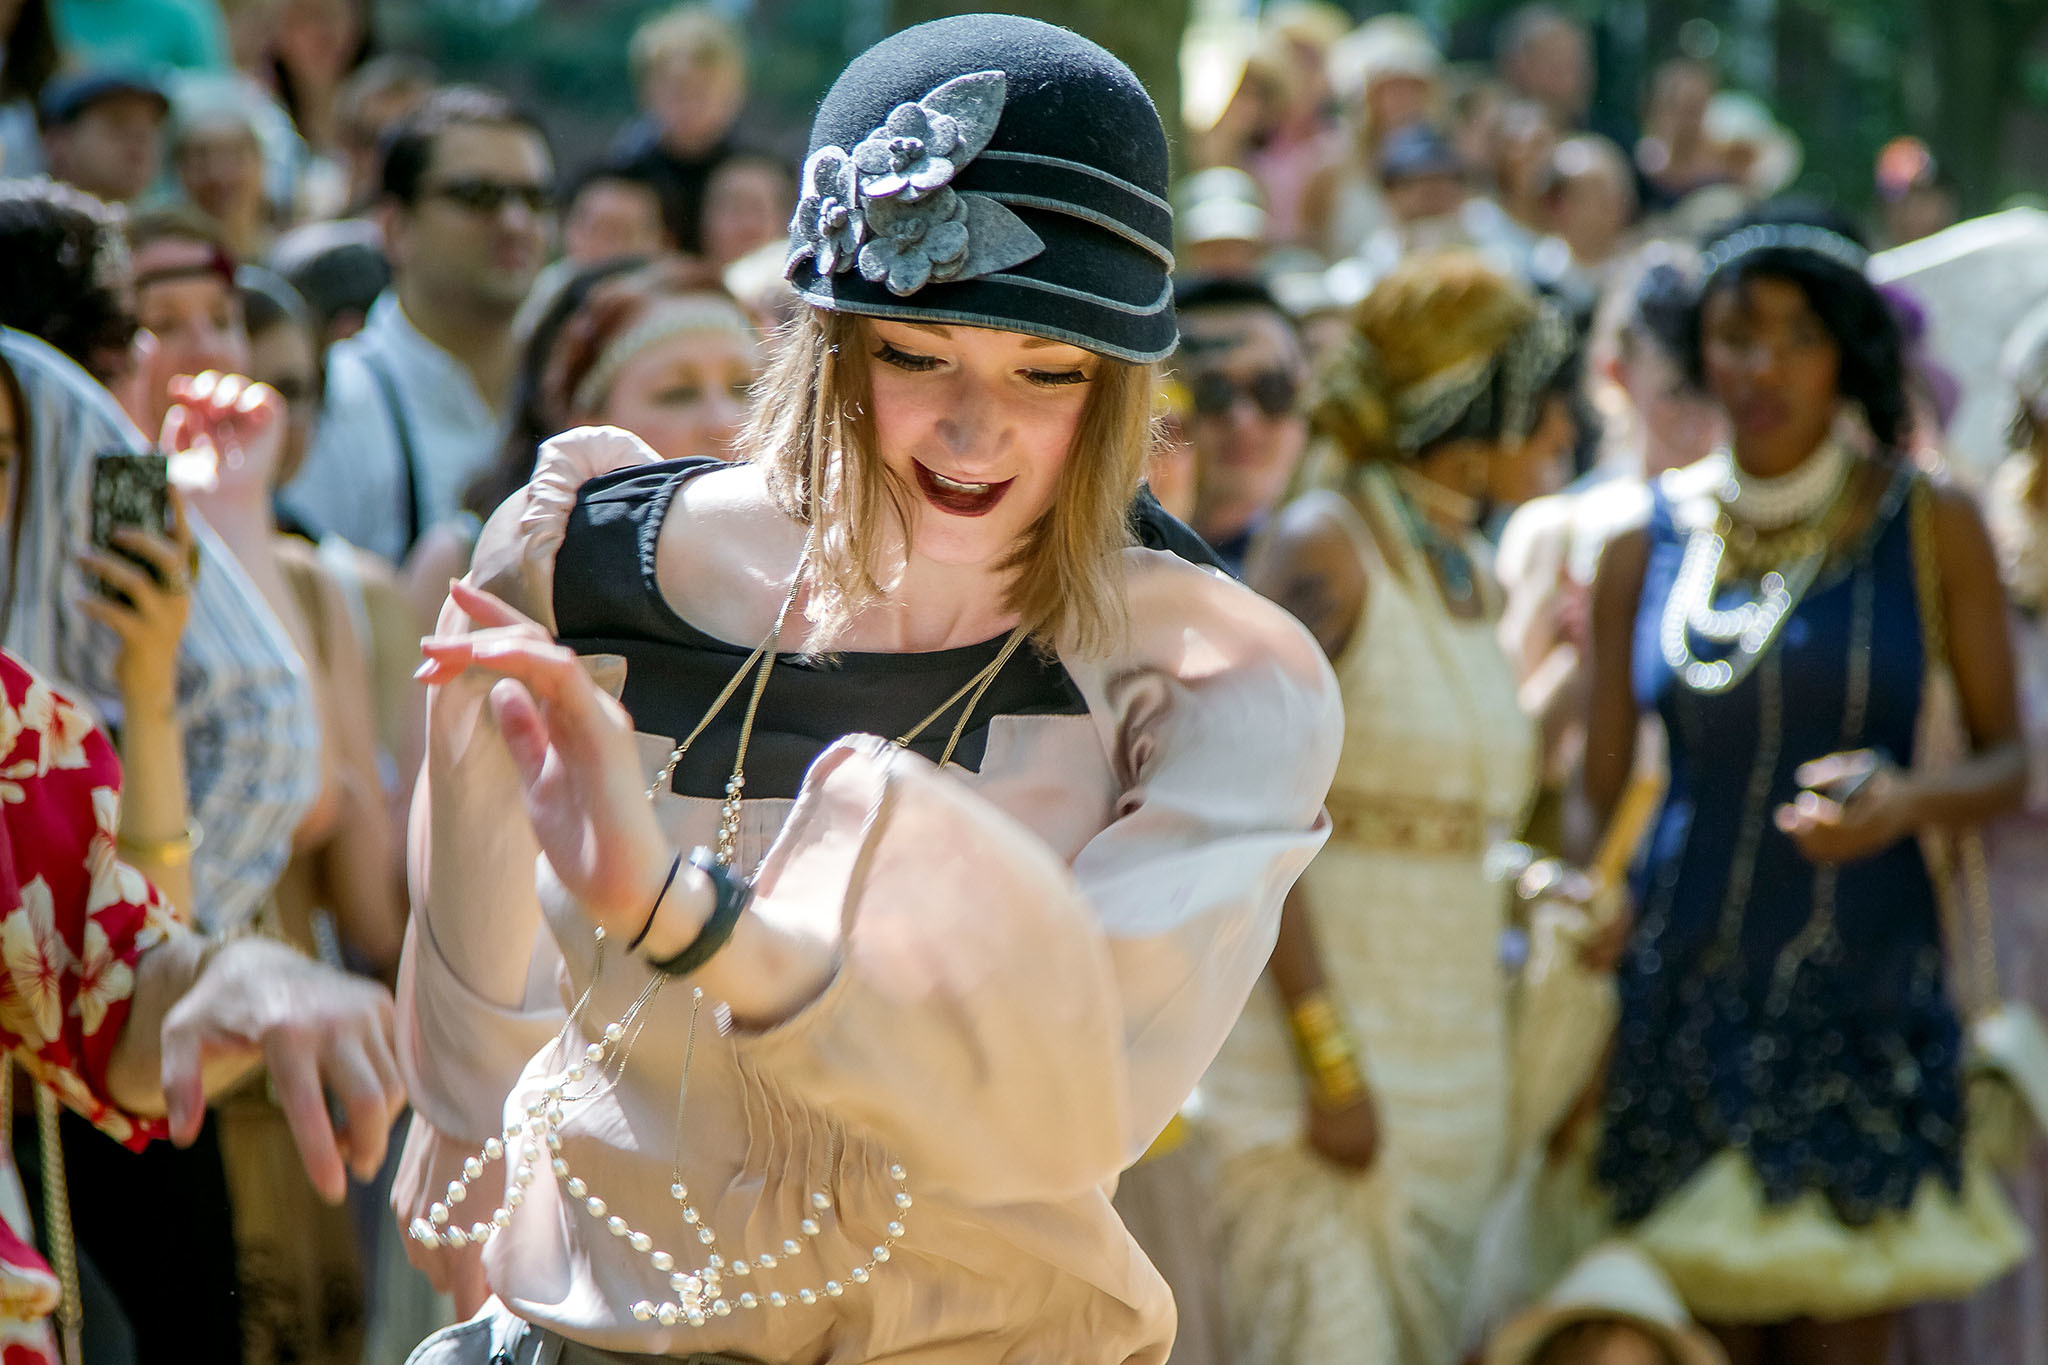 Relive the Jazz Age on Governors Island this weekend